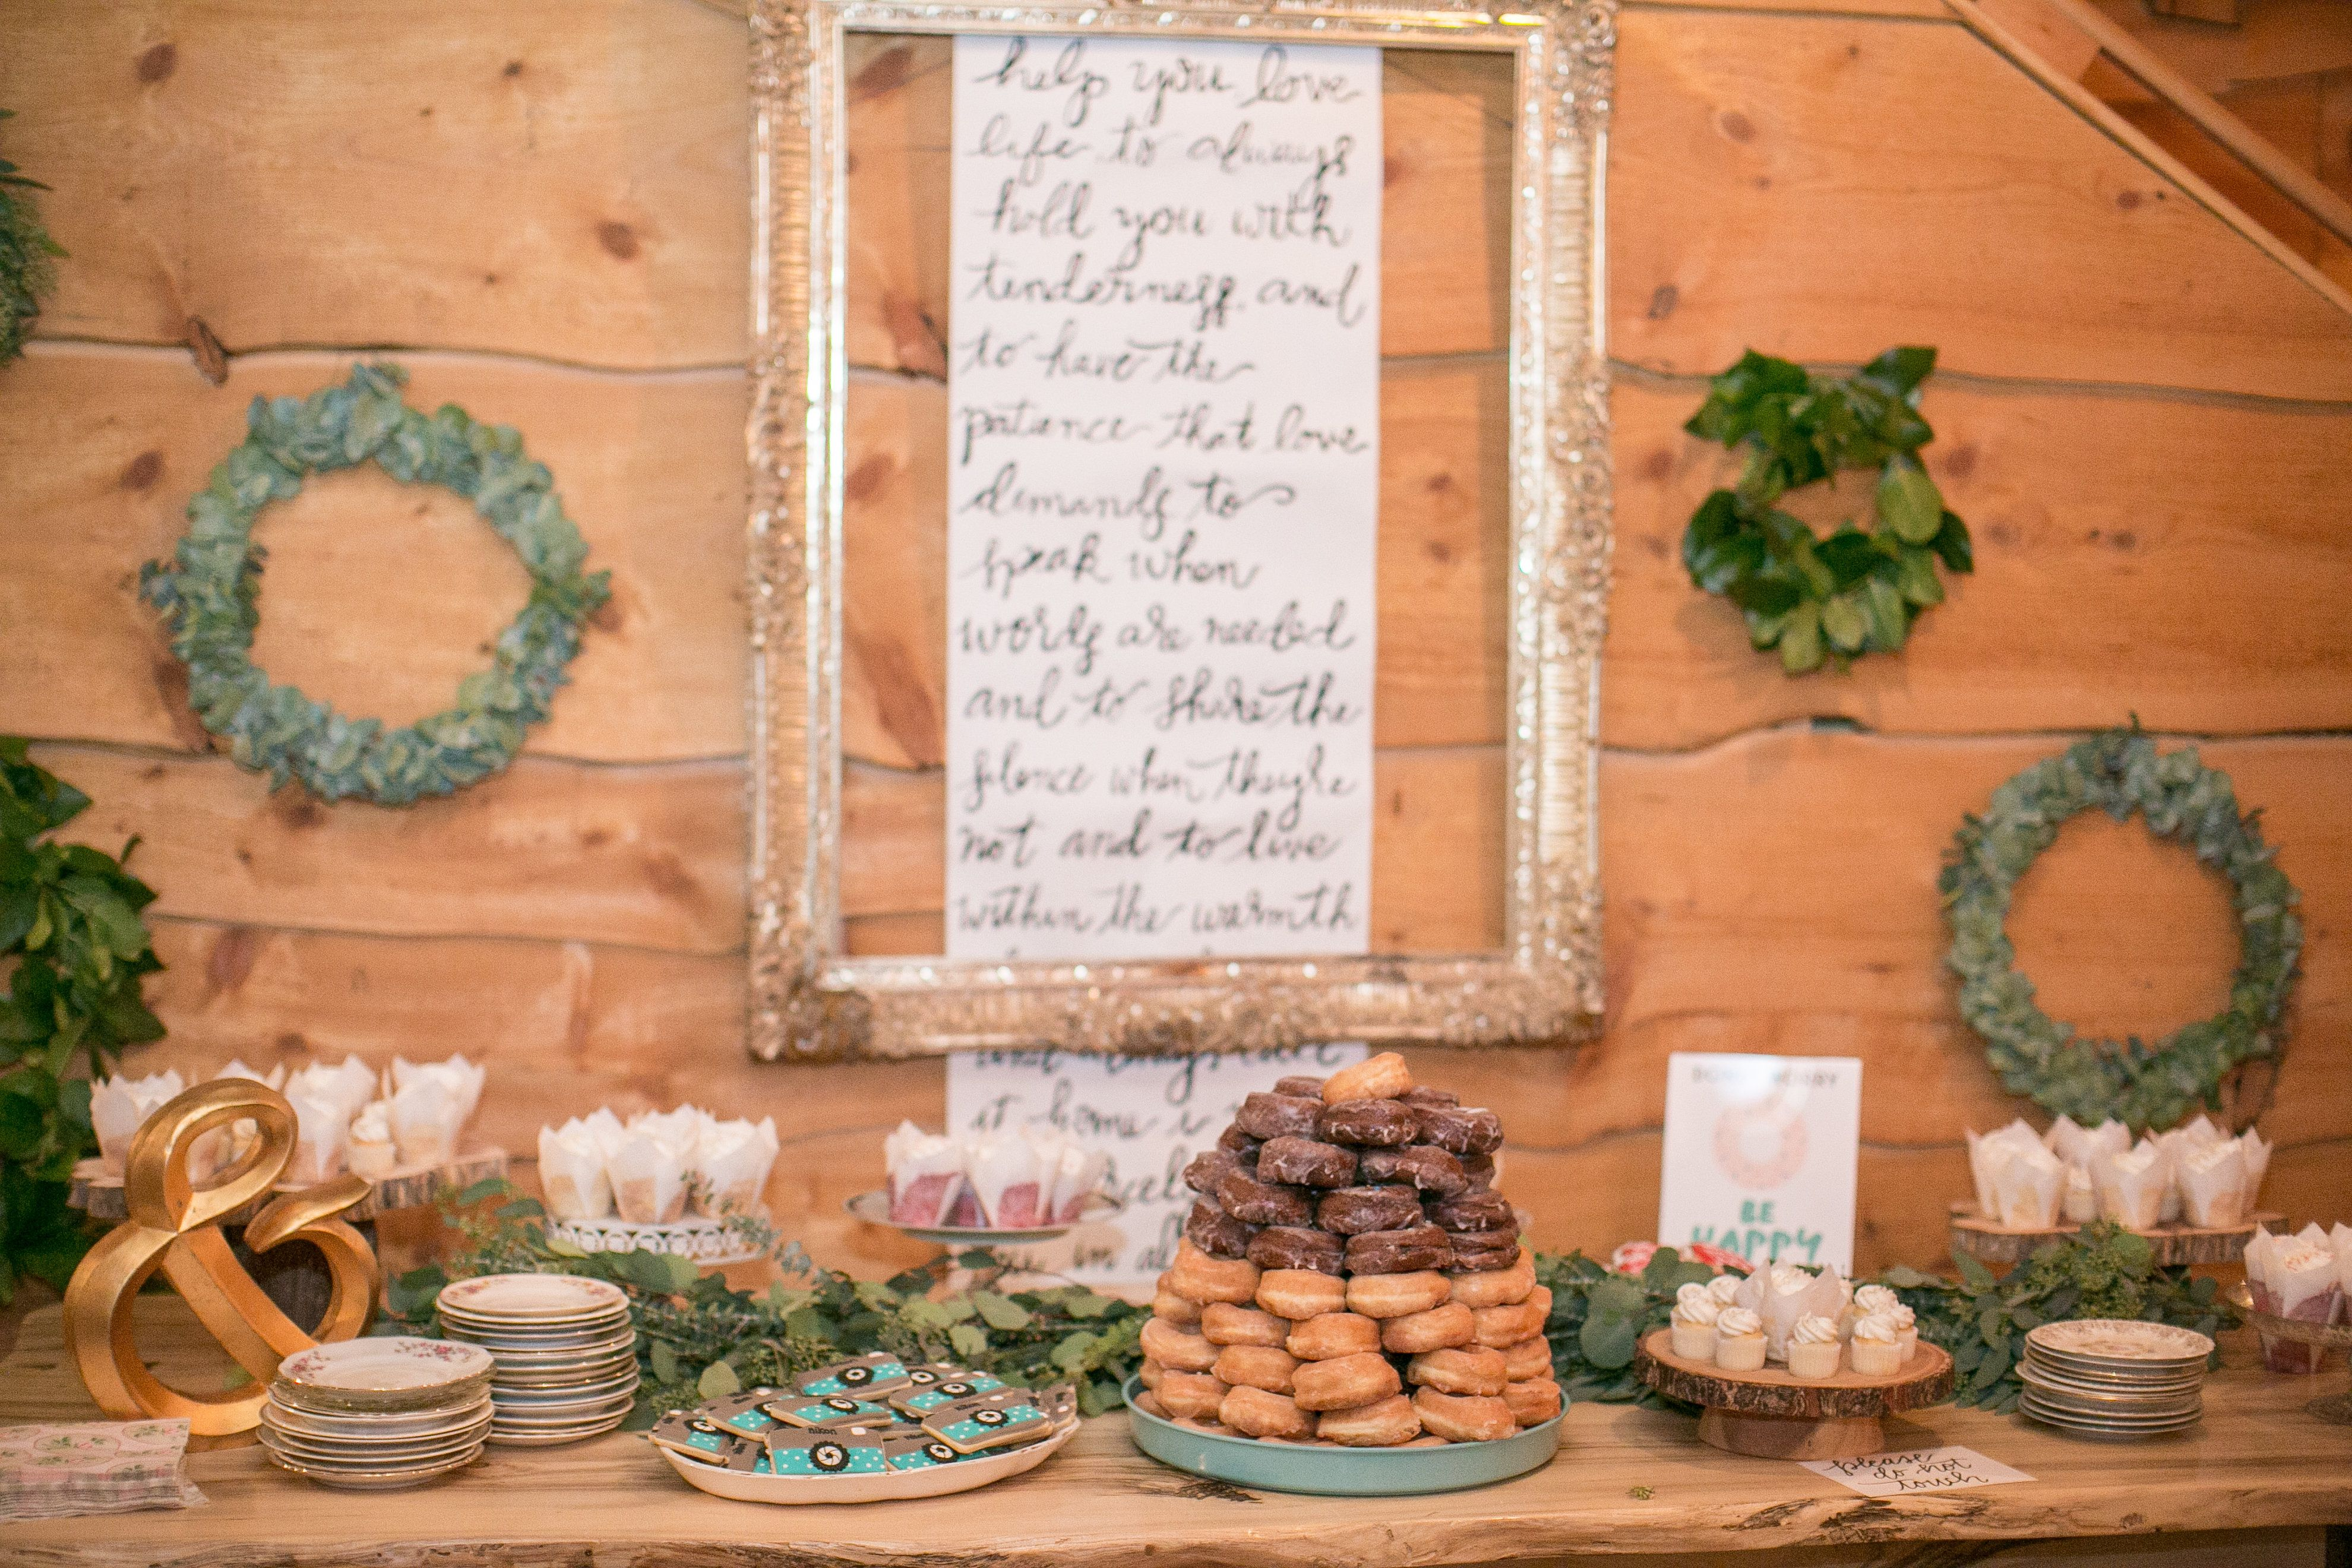 Barn wedding cake table ideas  custom hand lettered oversized scroll  wedding cake table scape